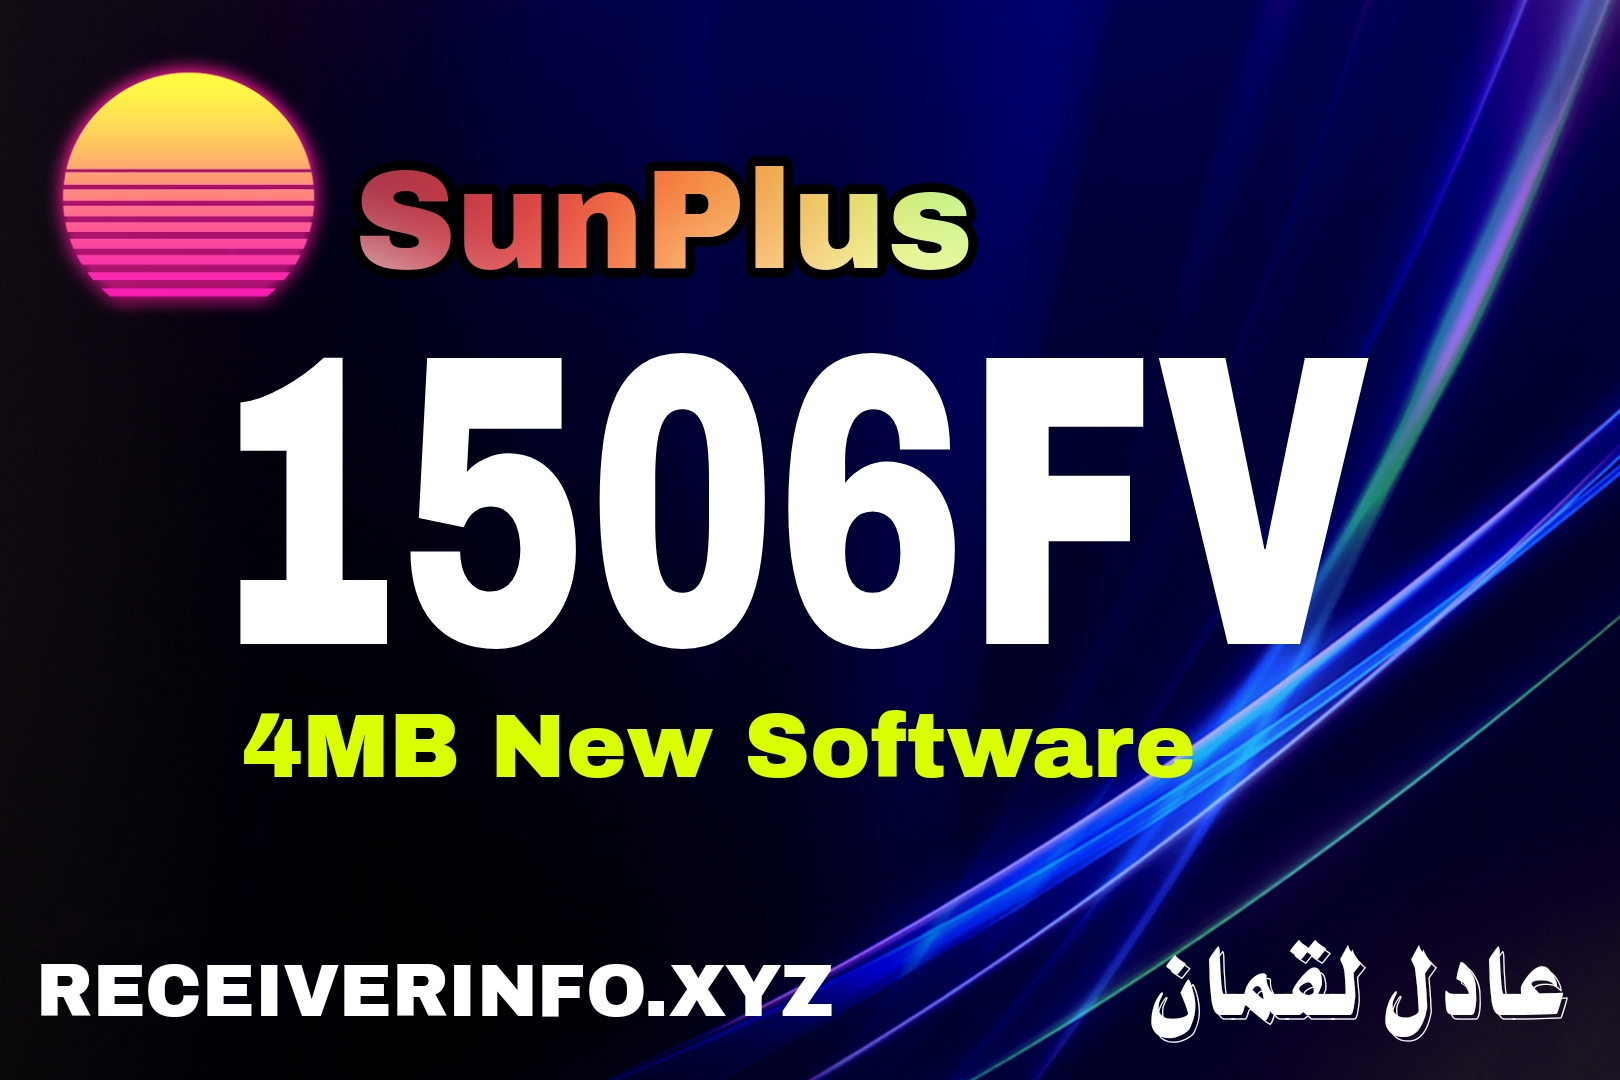 Sunplus Chipset 1506FV Hd Receiver All Software With Full Specification